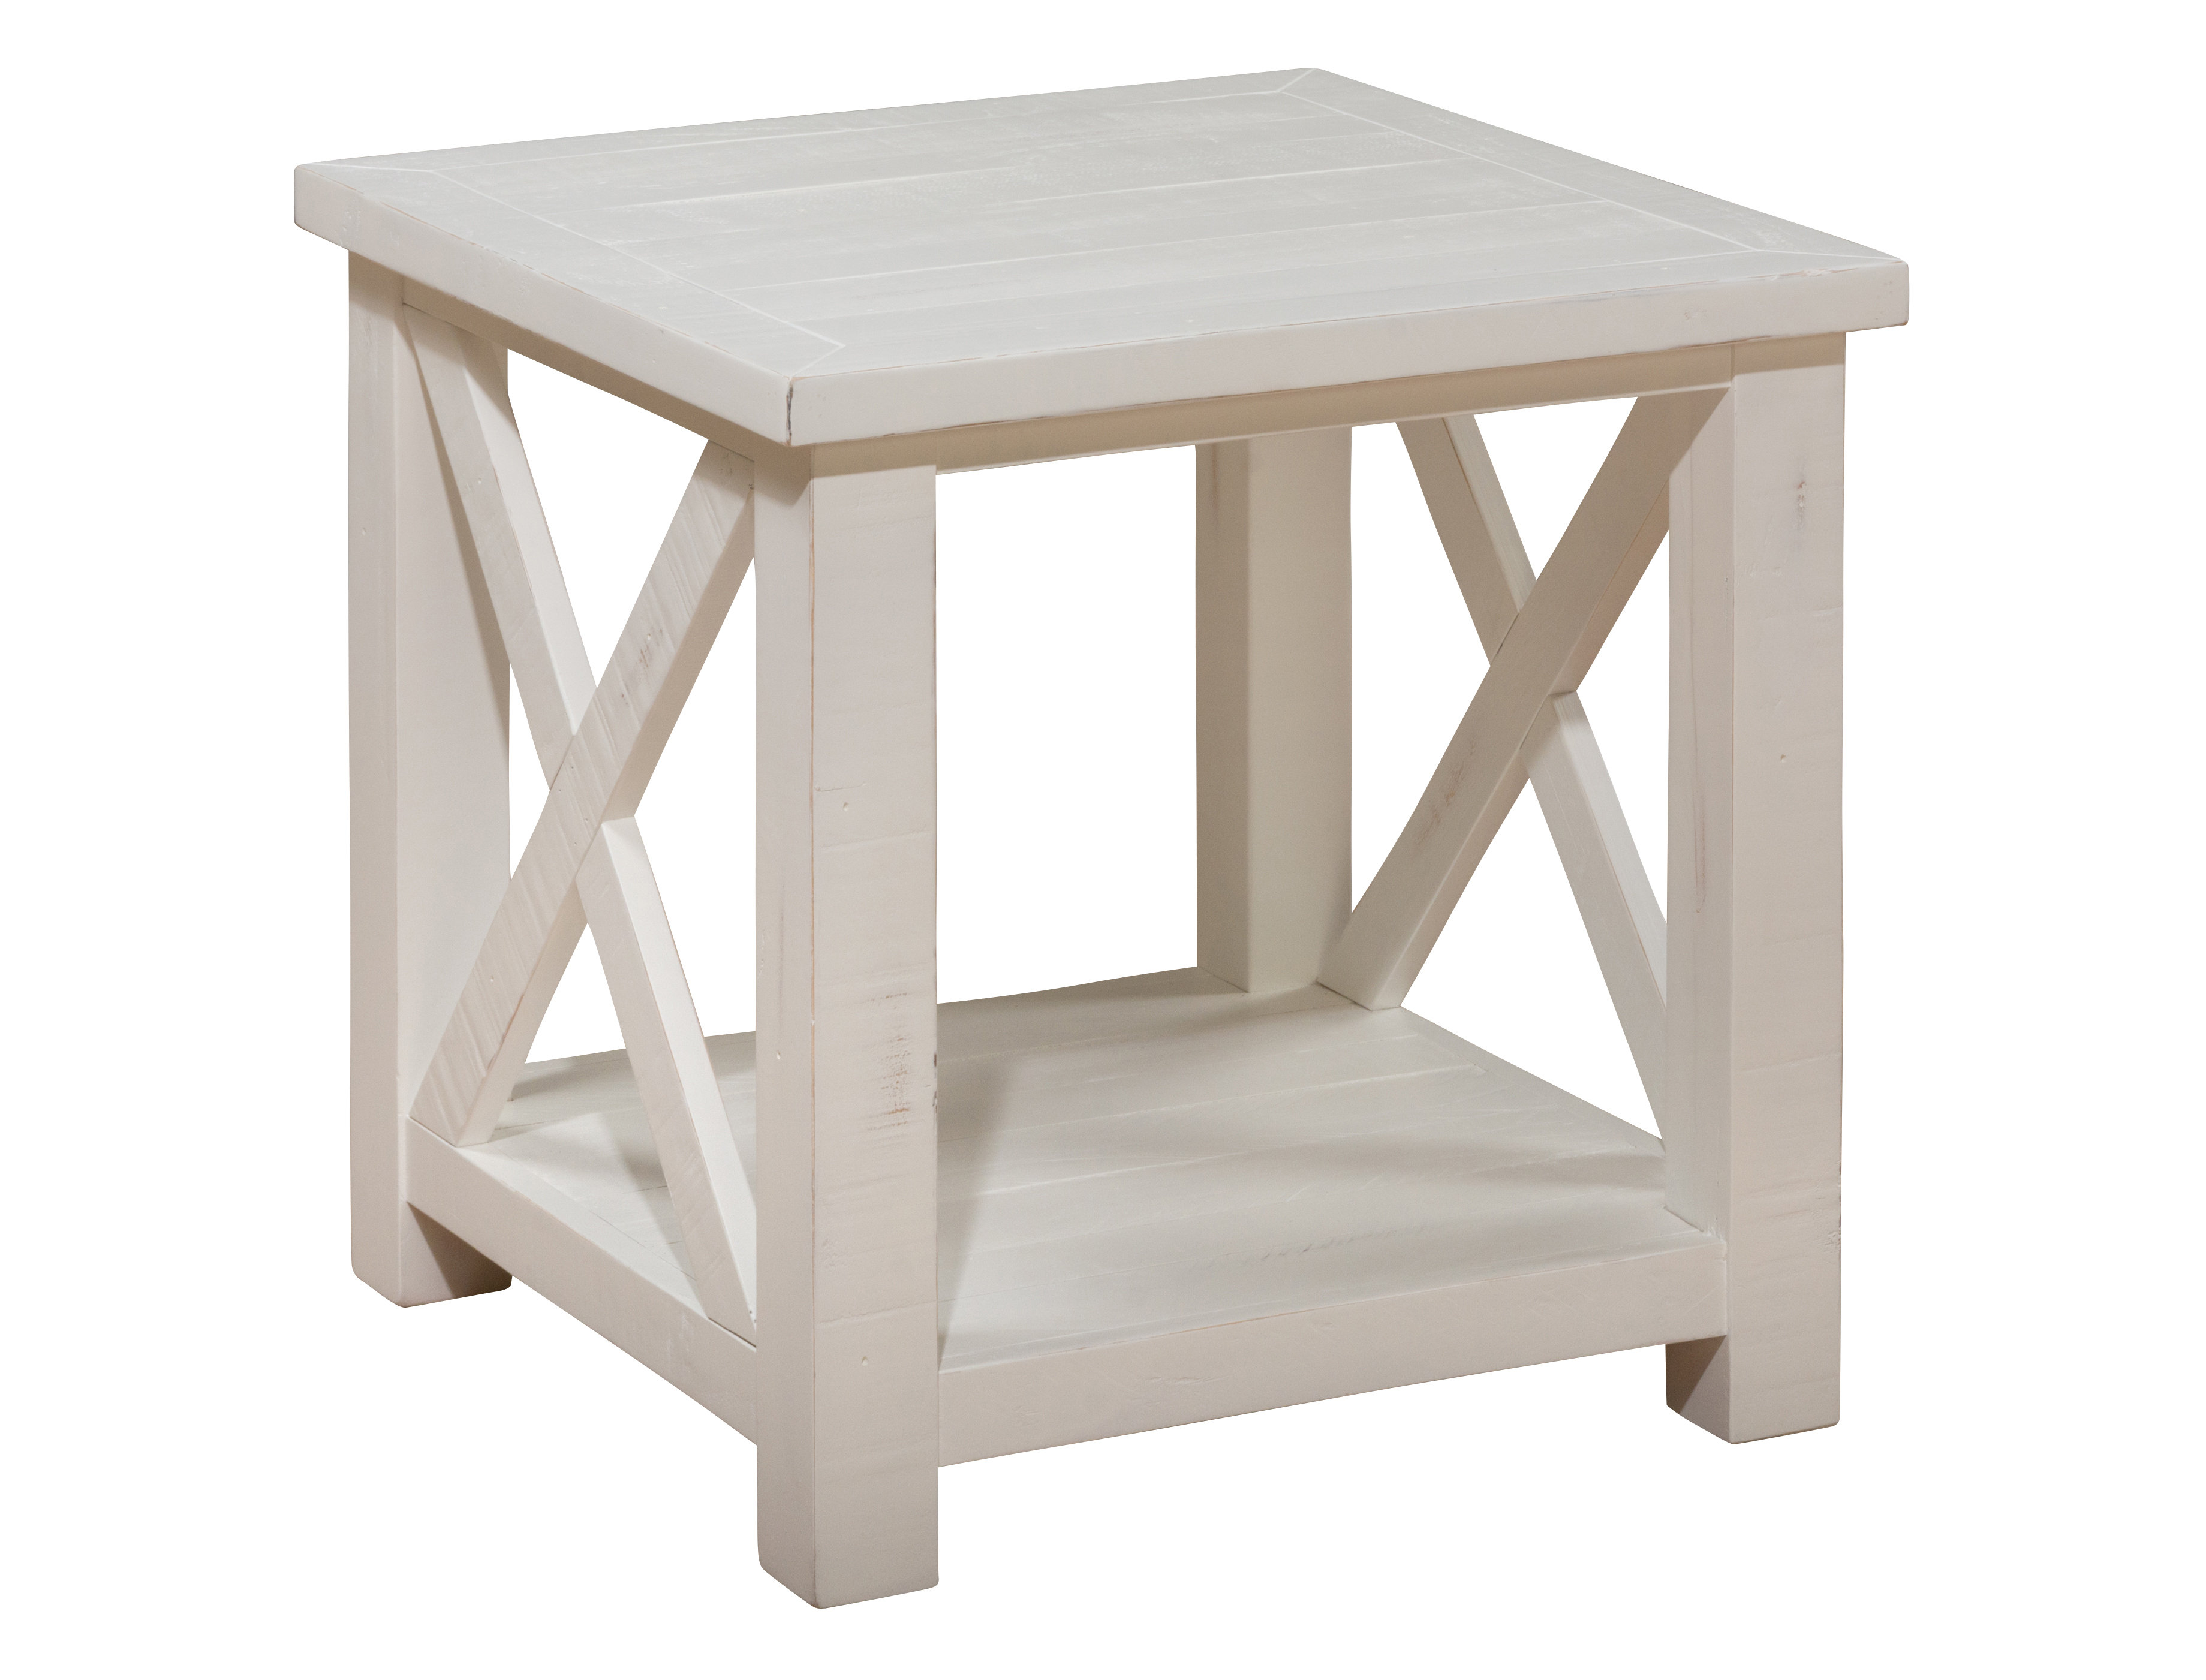 ranchero end table joss main sanderling patchen accent ashley furniture glass west elm wood art small round vinyl tablecloth marilyn monroe bedroom decor ikea garden coffee